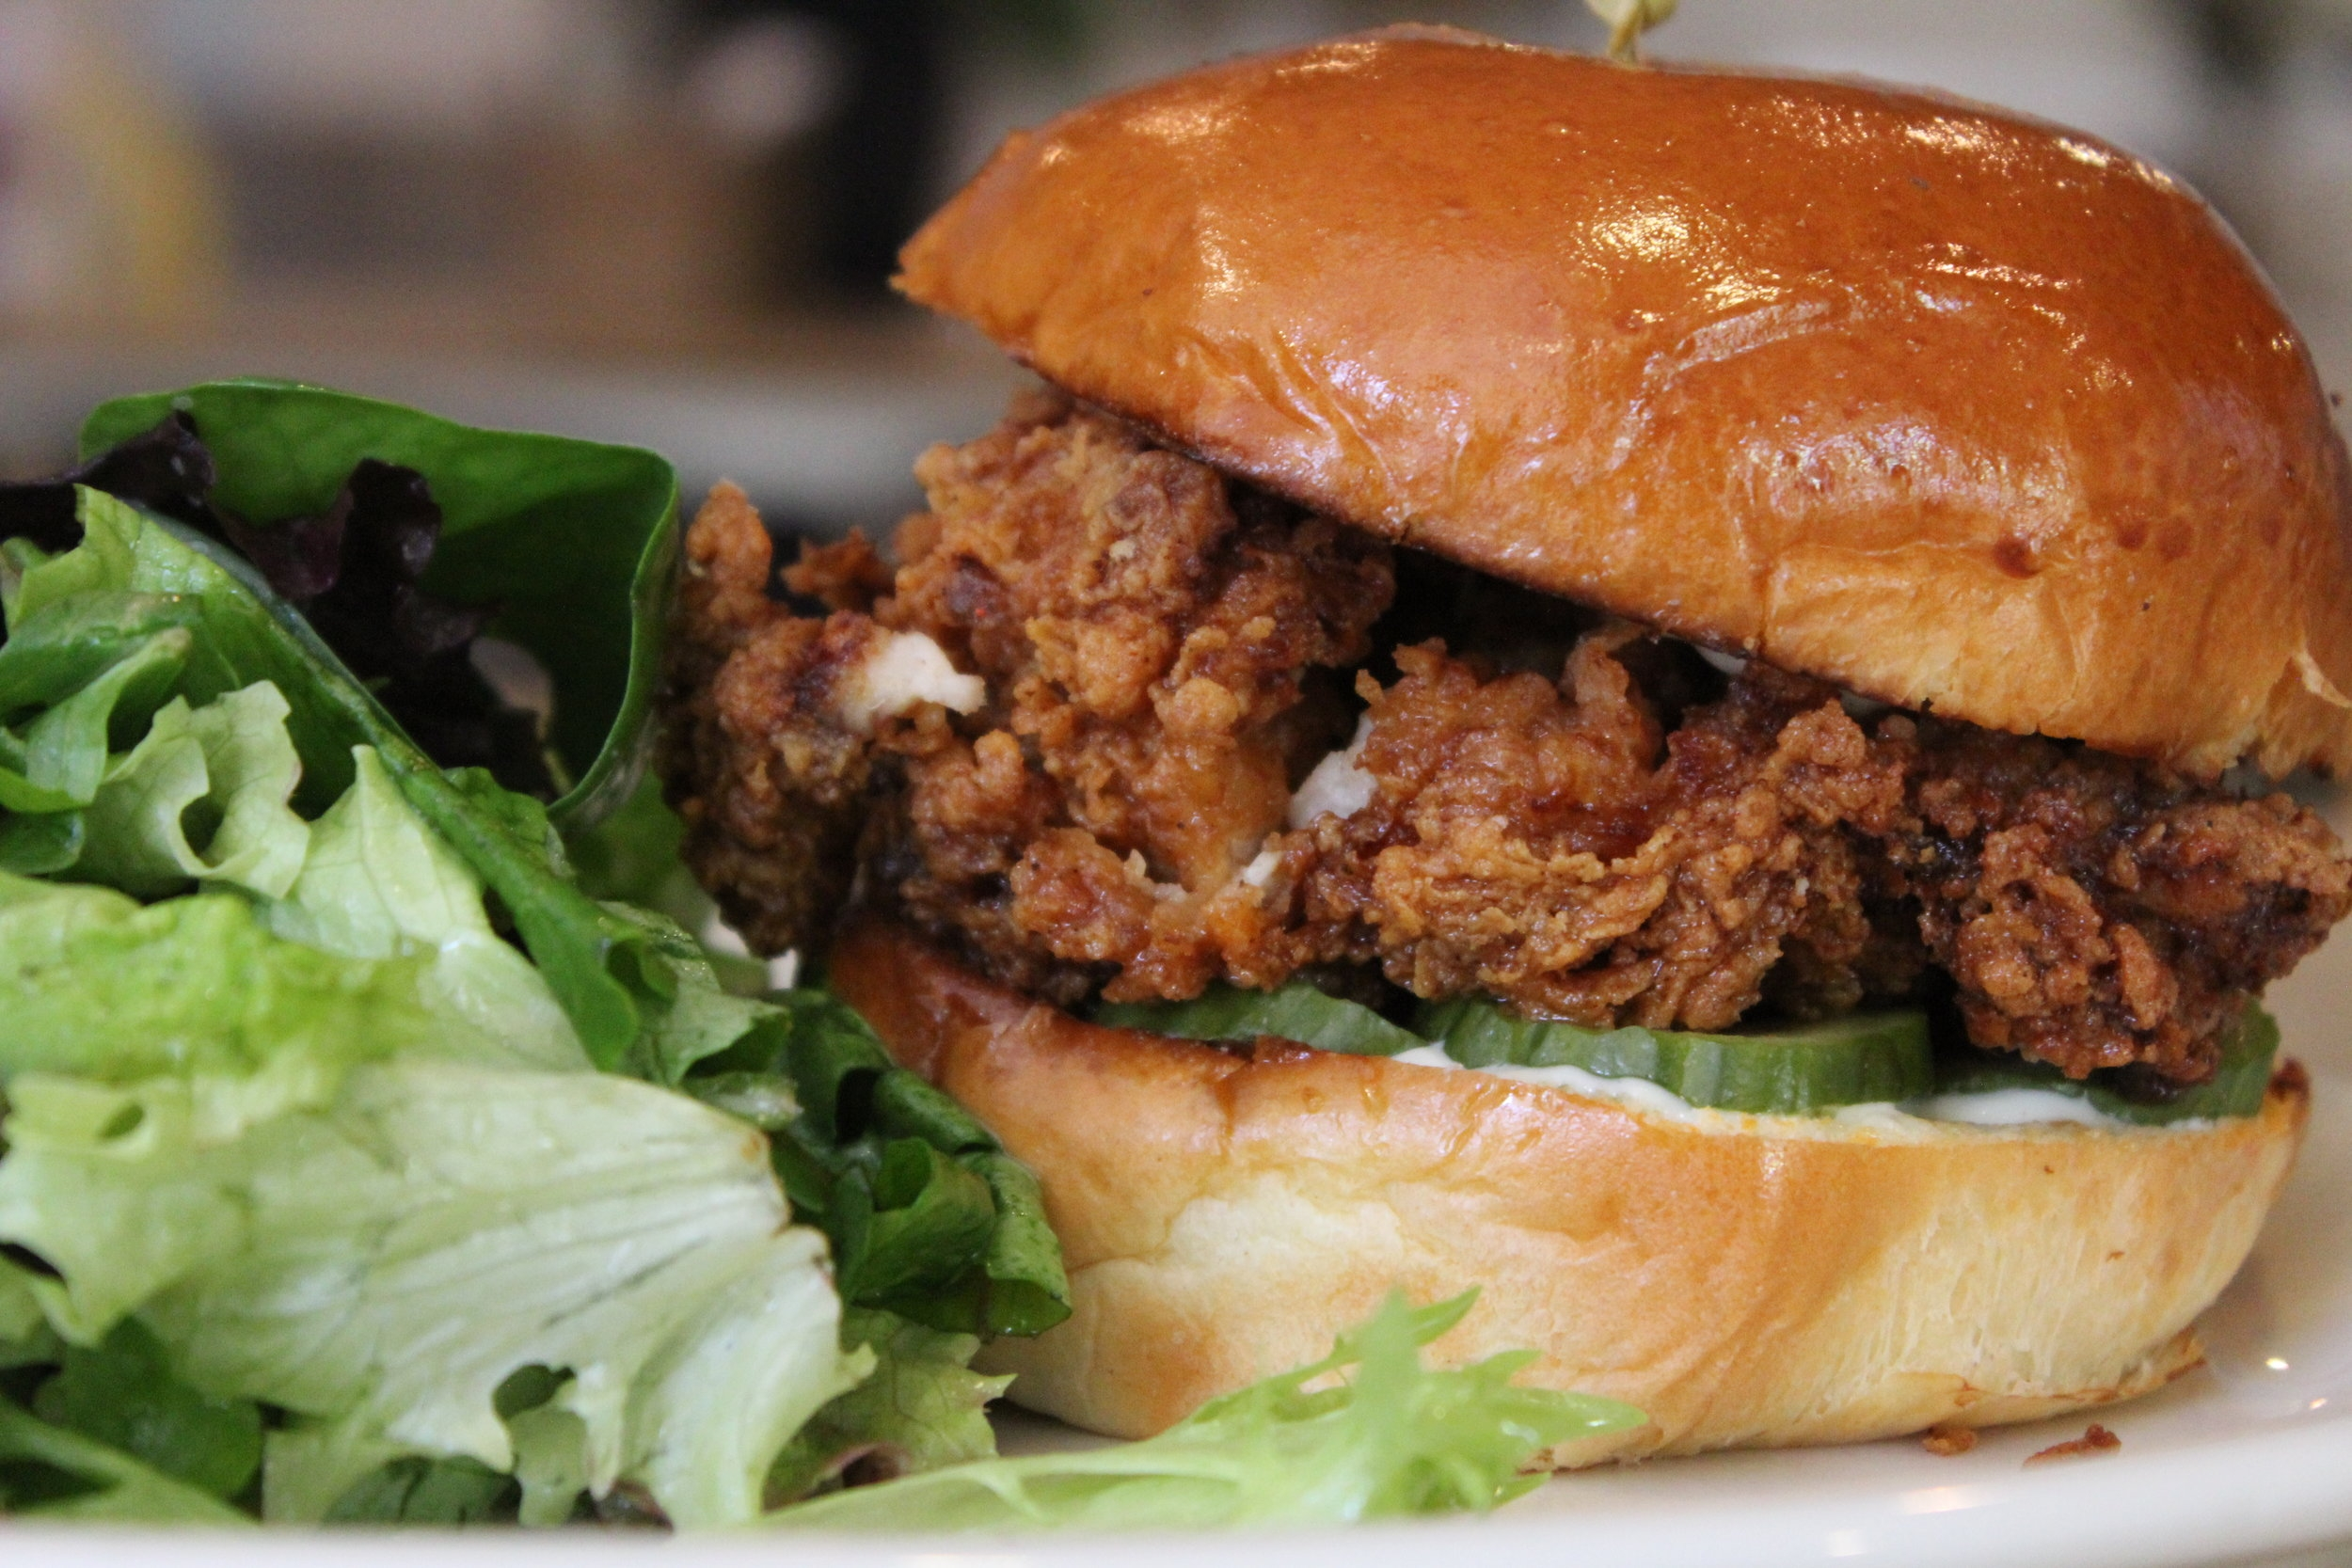 Fried Chicken Sandwich with side of mixed greens salad